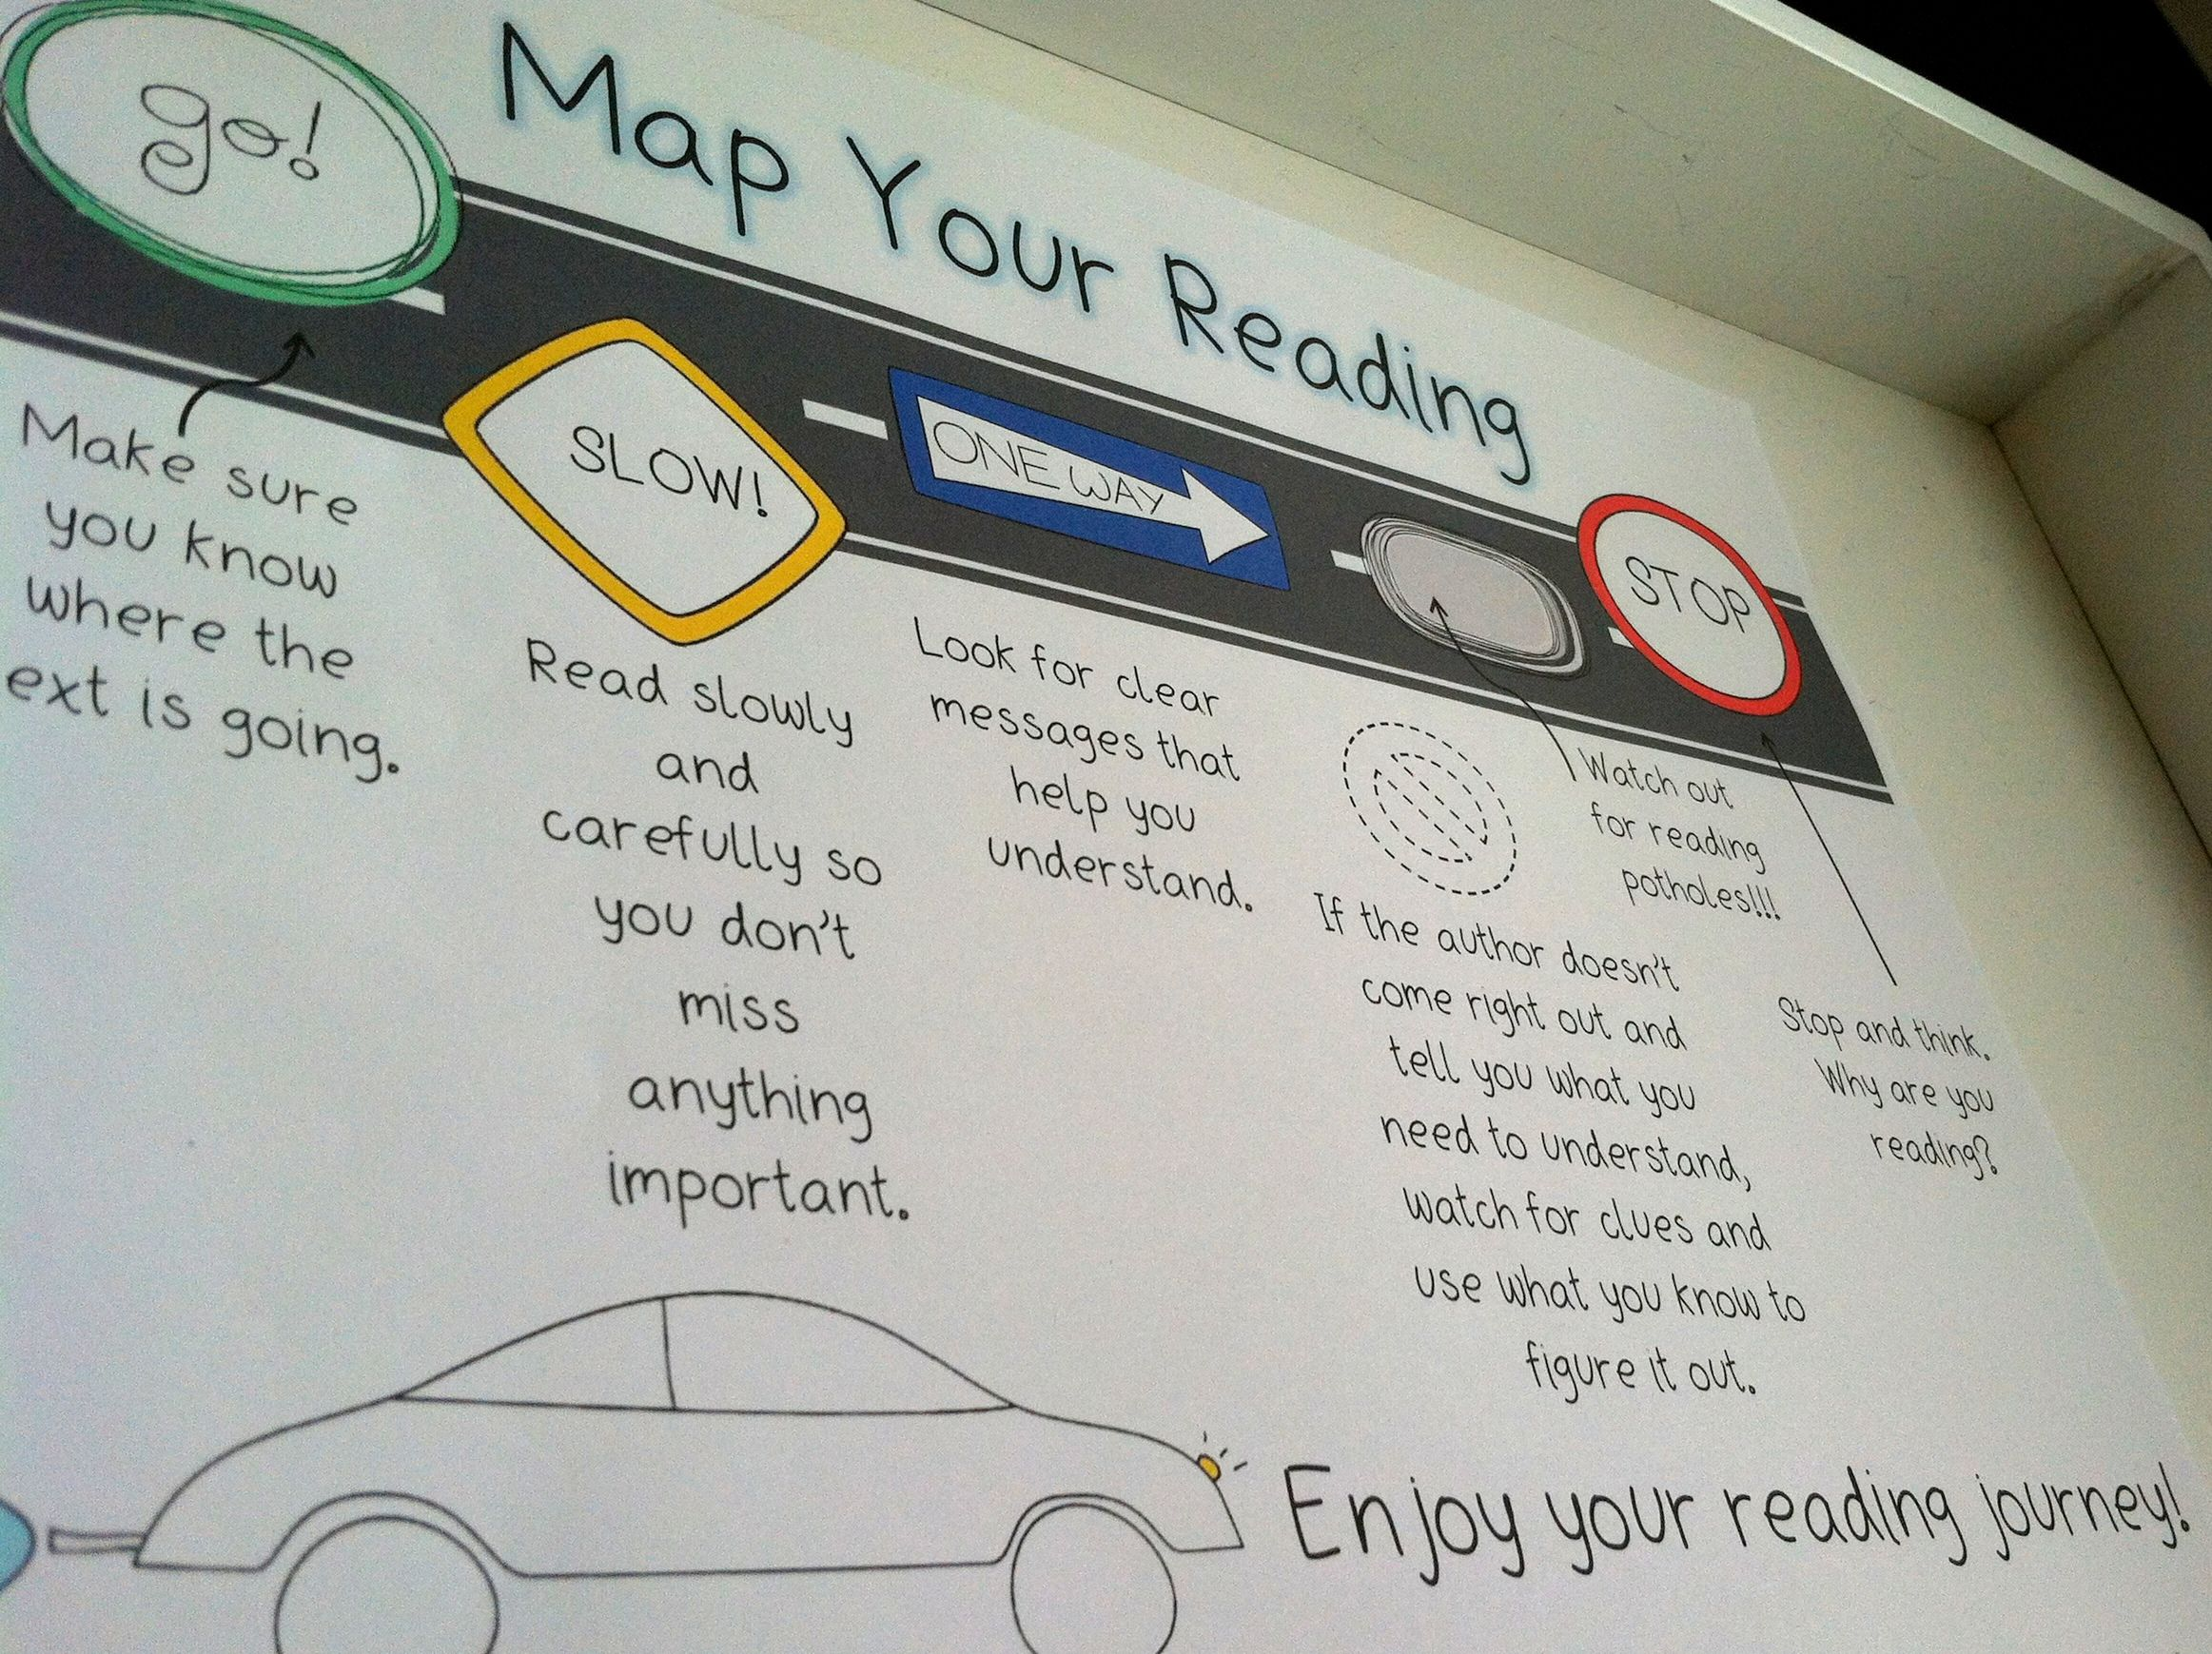 Speedy Reading Review: Take a reading road trip with this quick printable reading activity. Great for classroom volunteers or for parents to use to work with struggling readers at home.